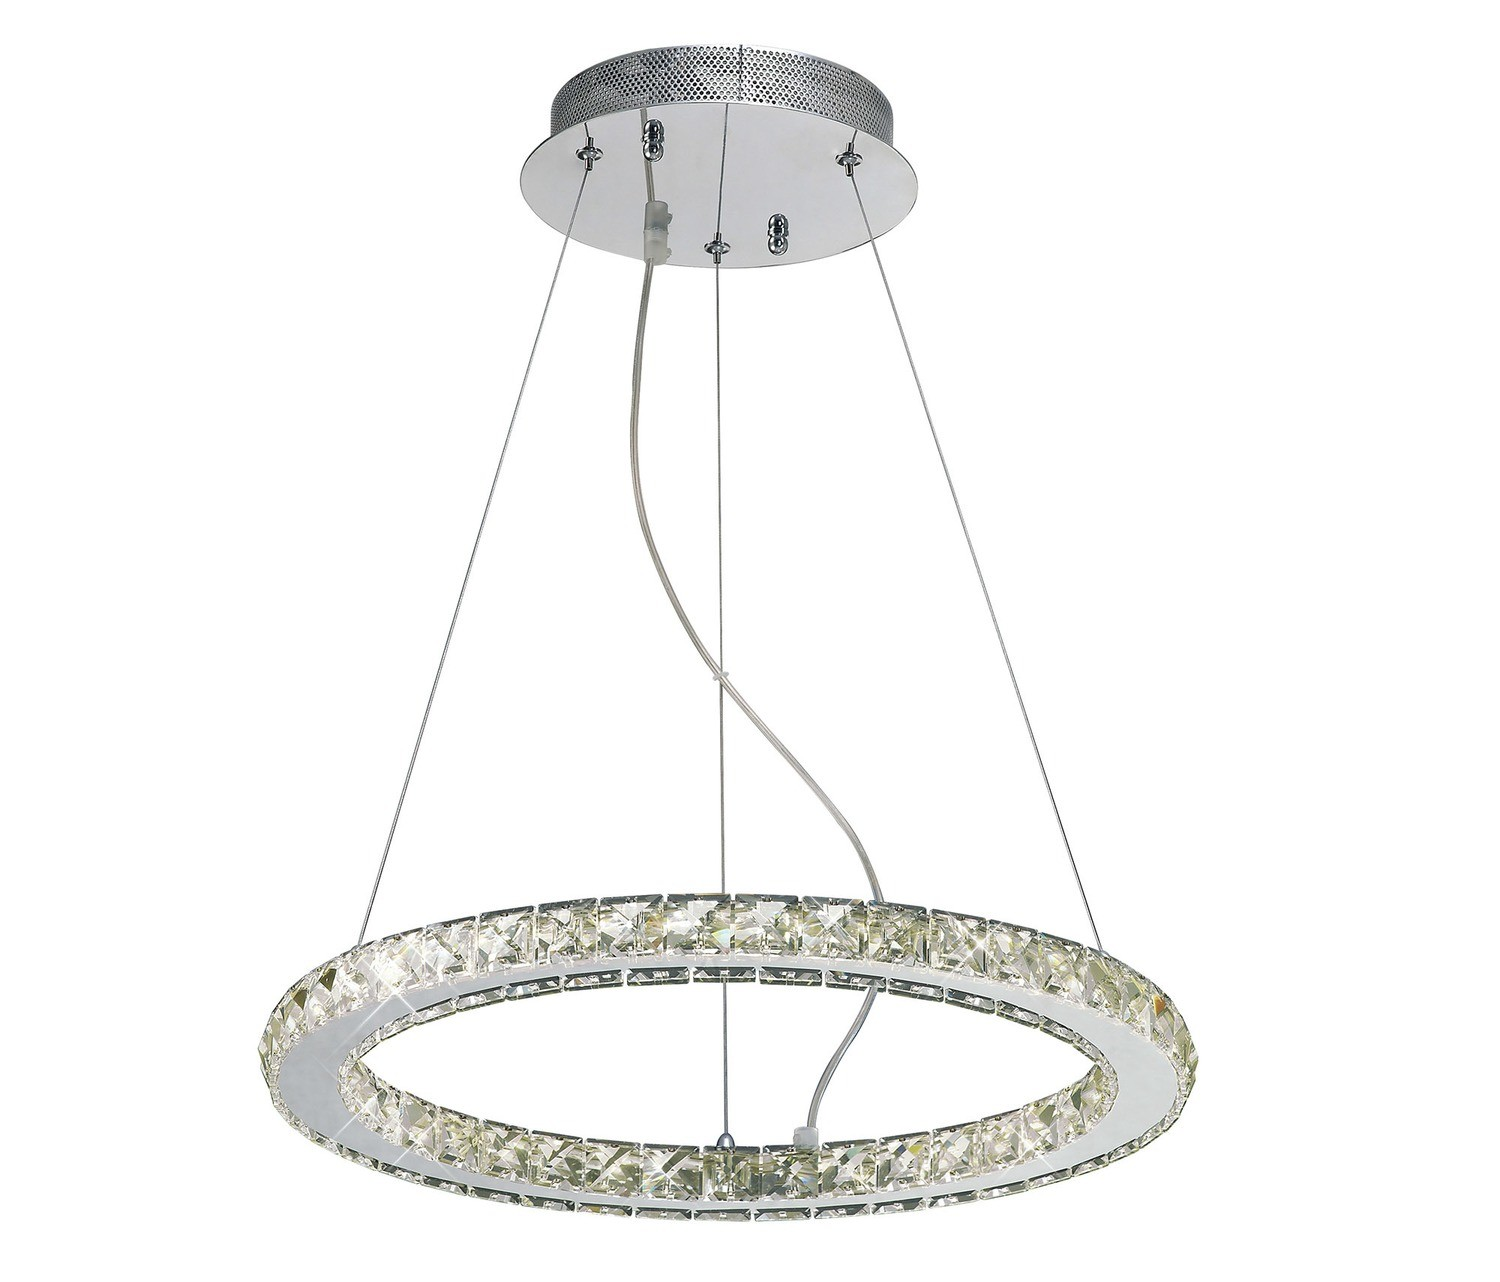 Galaxy Pendant Round Small 27W LED 4000K Polished Chrome/Crystal